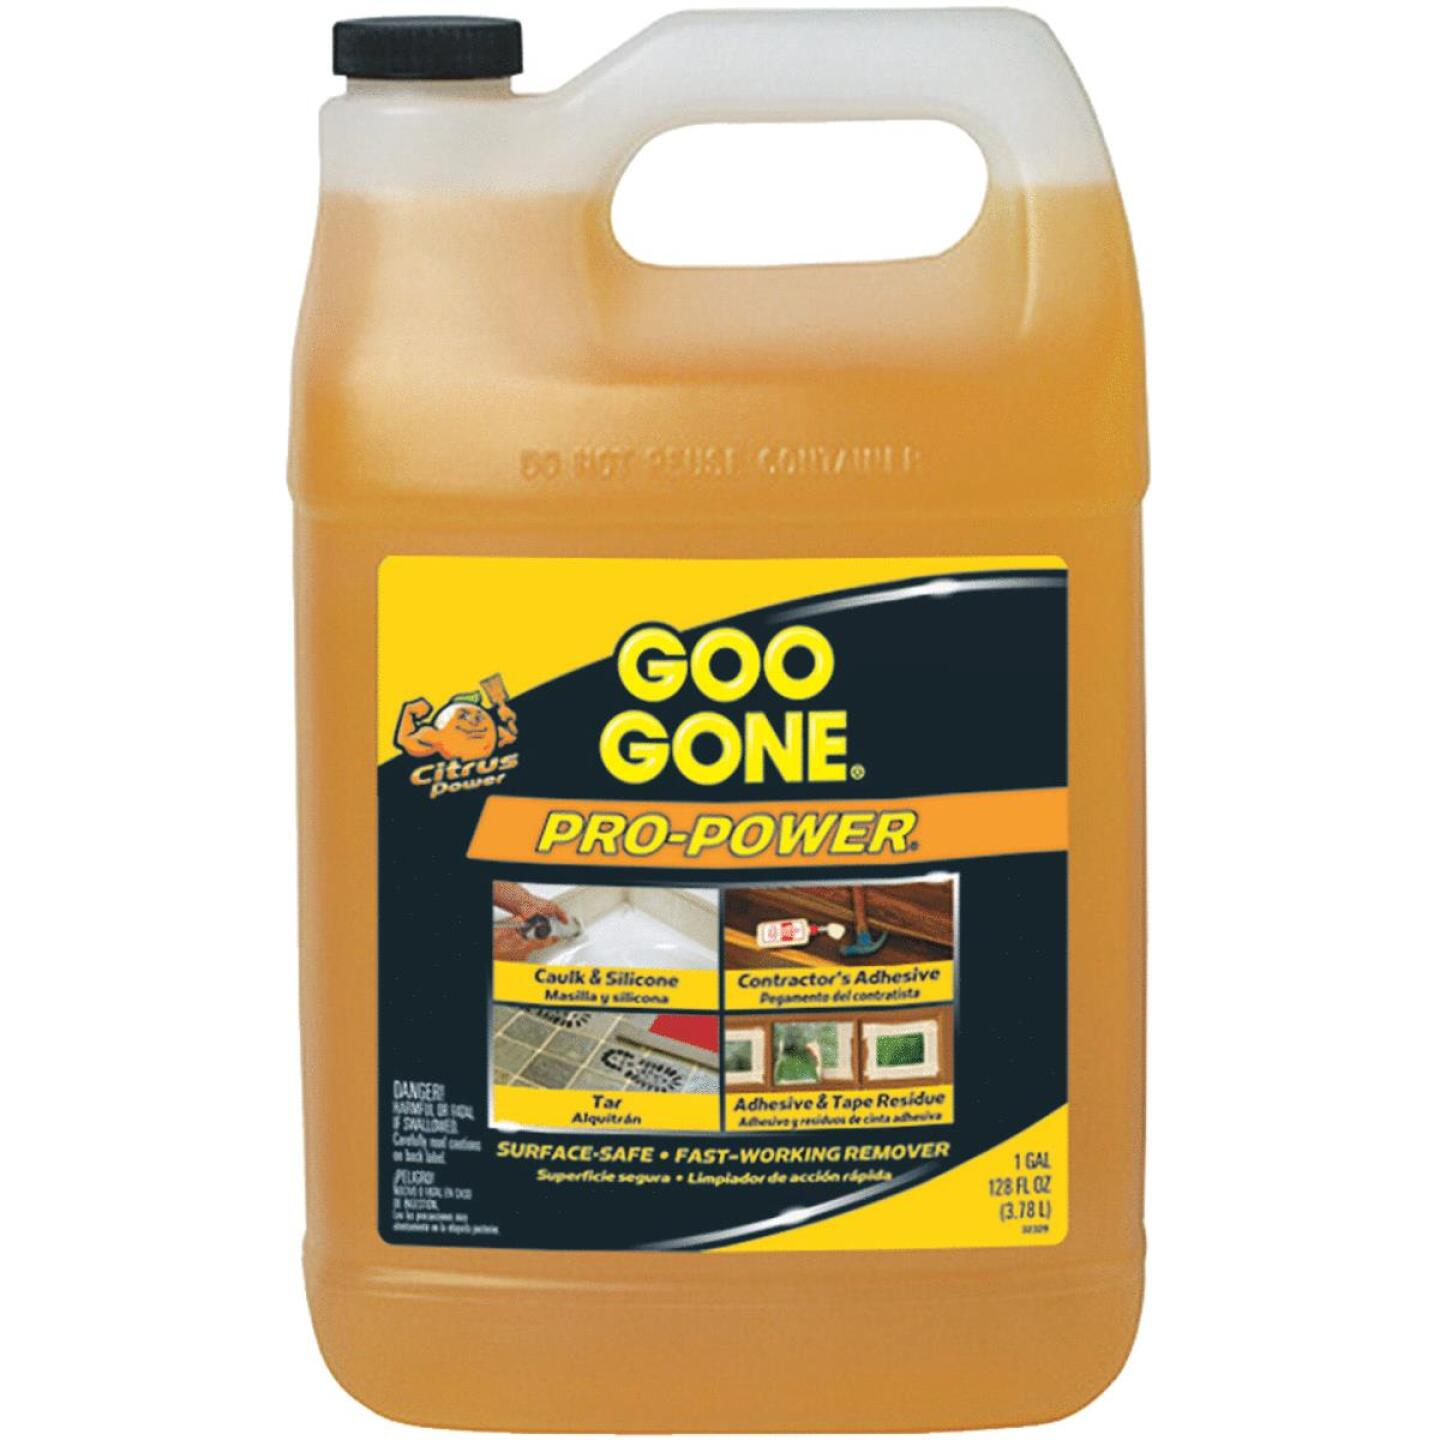 Goo Gone 1 Gal. Pro-Power Adhesive Remover Image 362